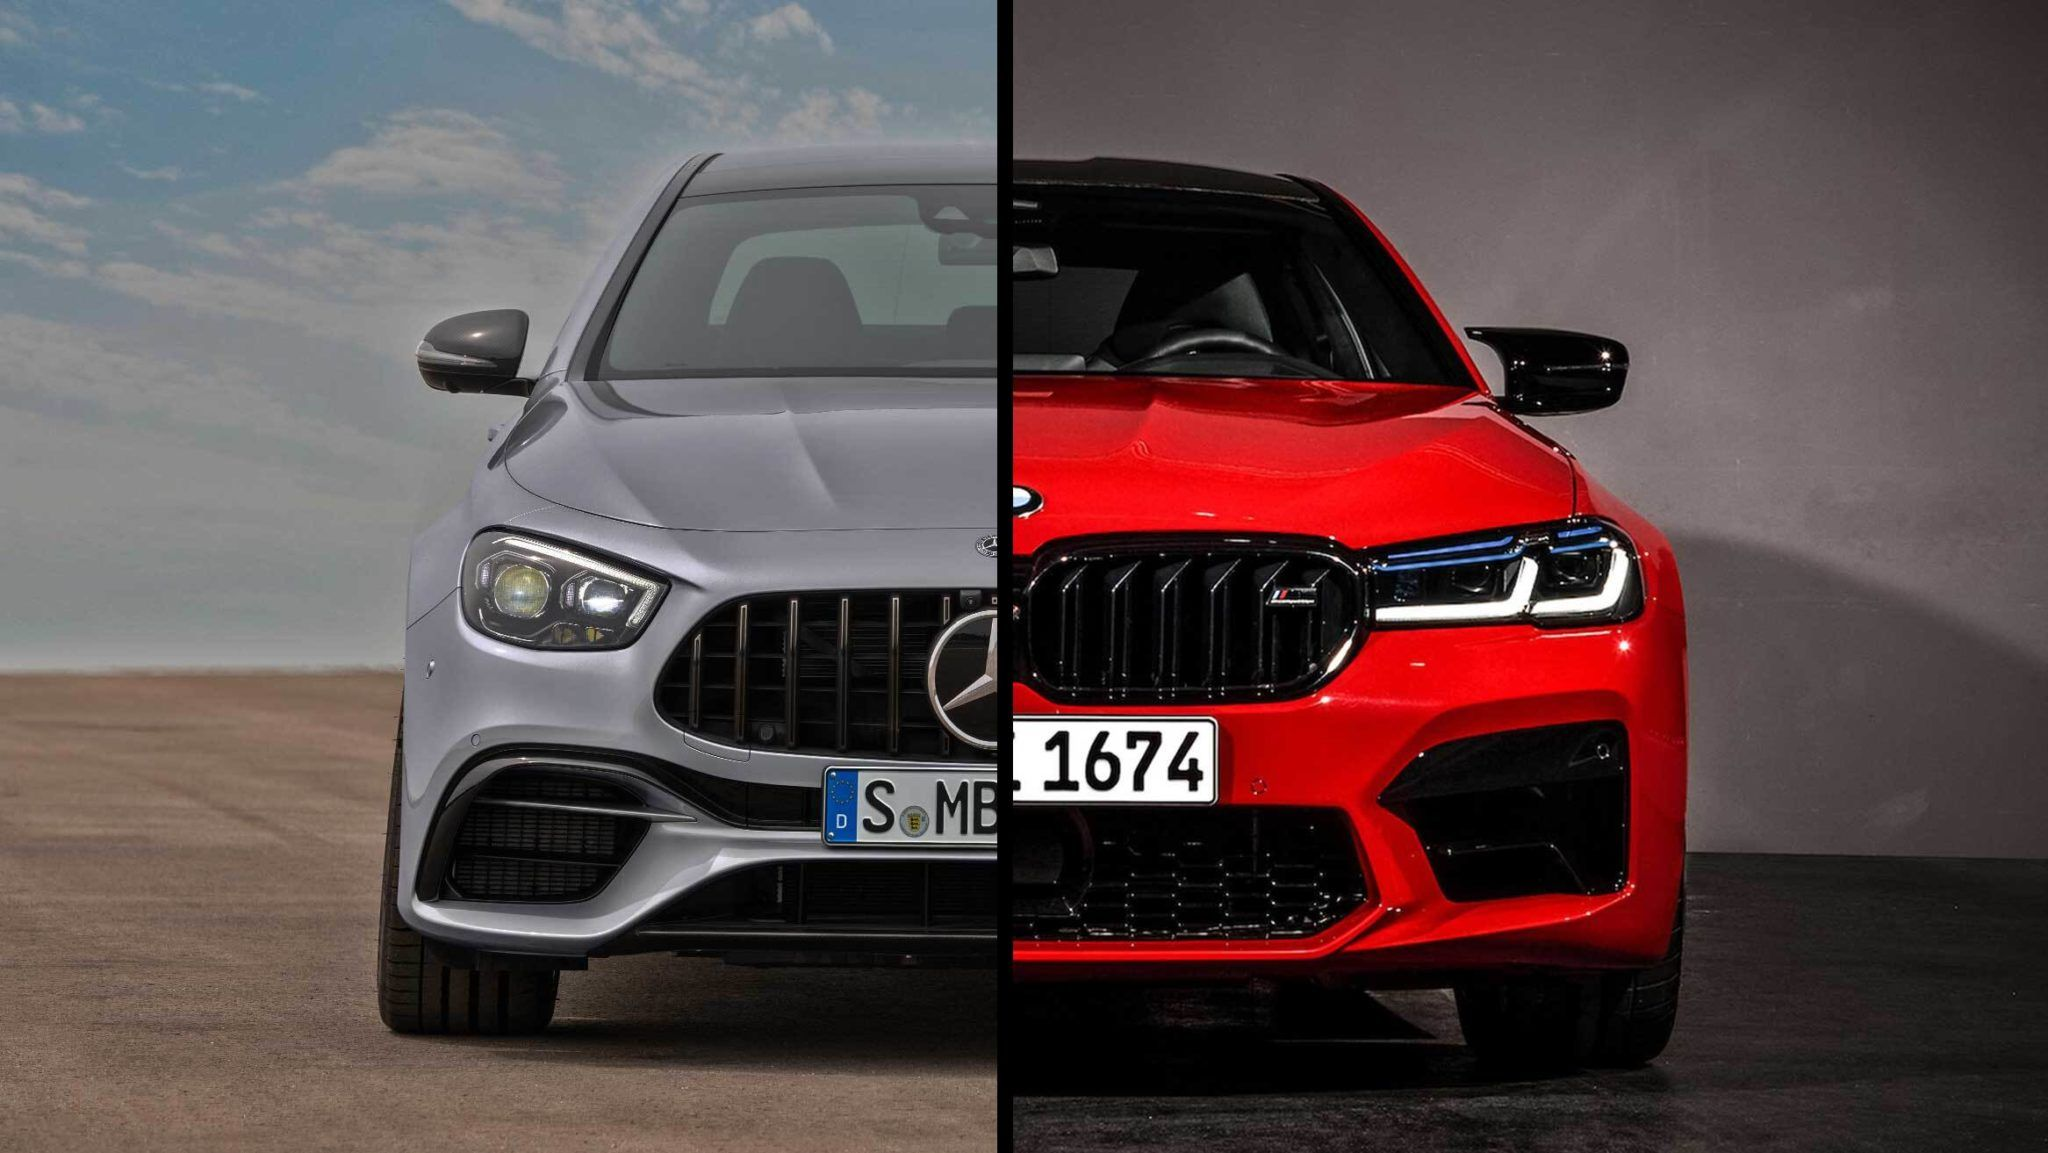 2021 BMW M5 vs. 2021 MercedesAMG E63 S By the Numbers in